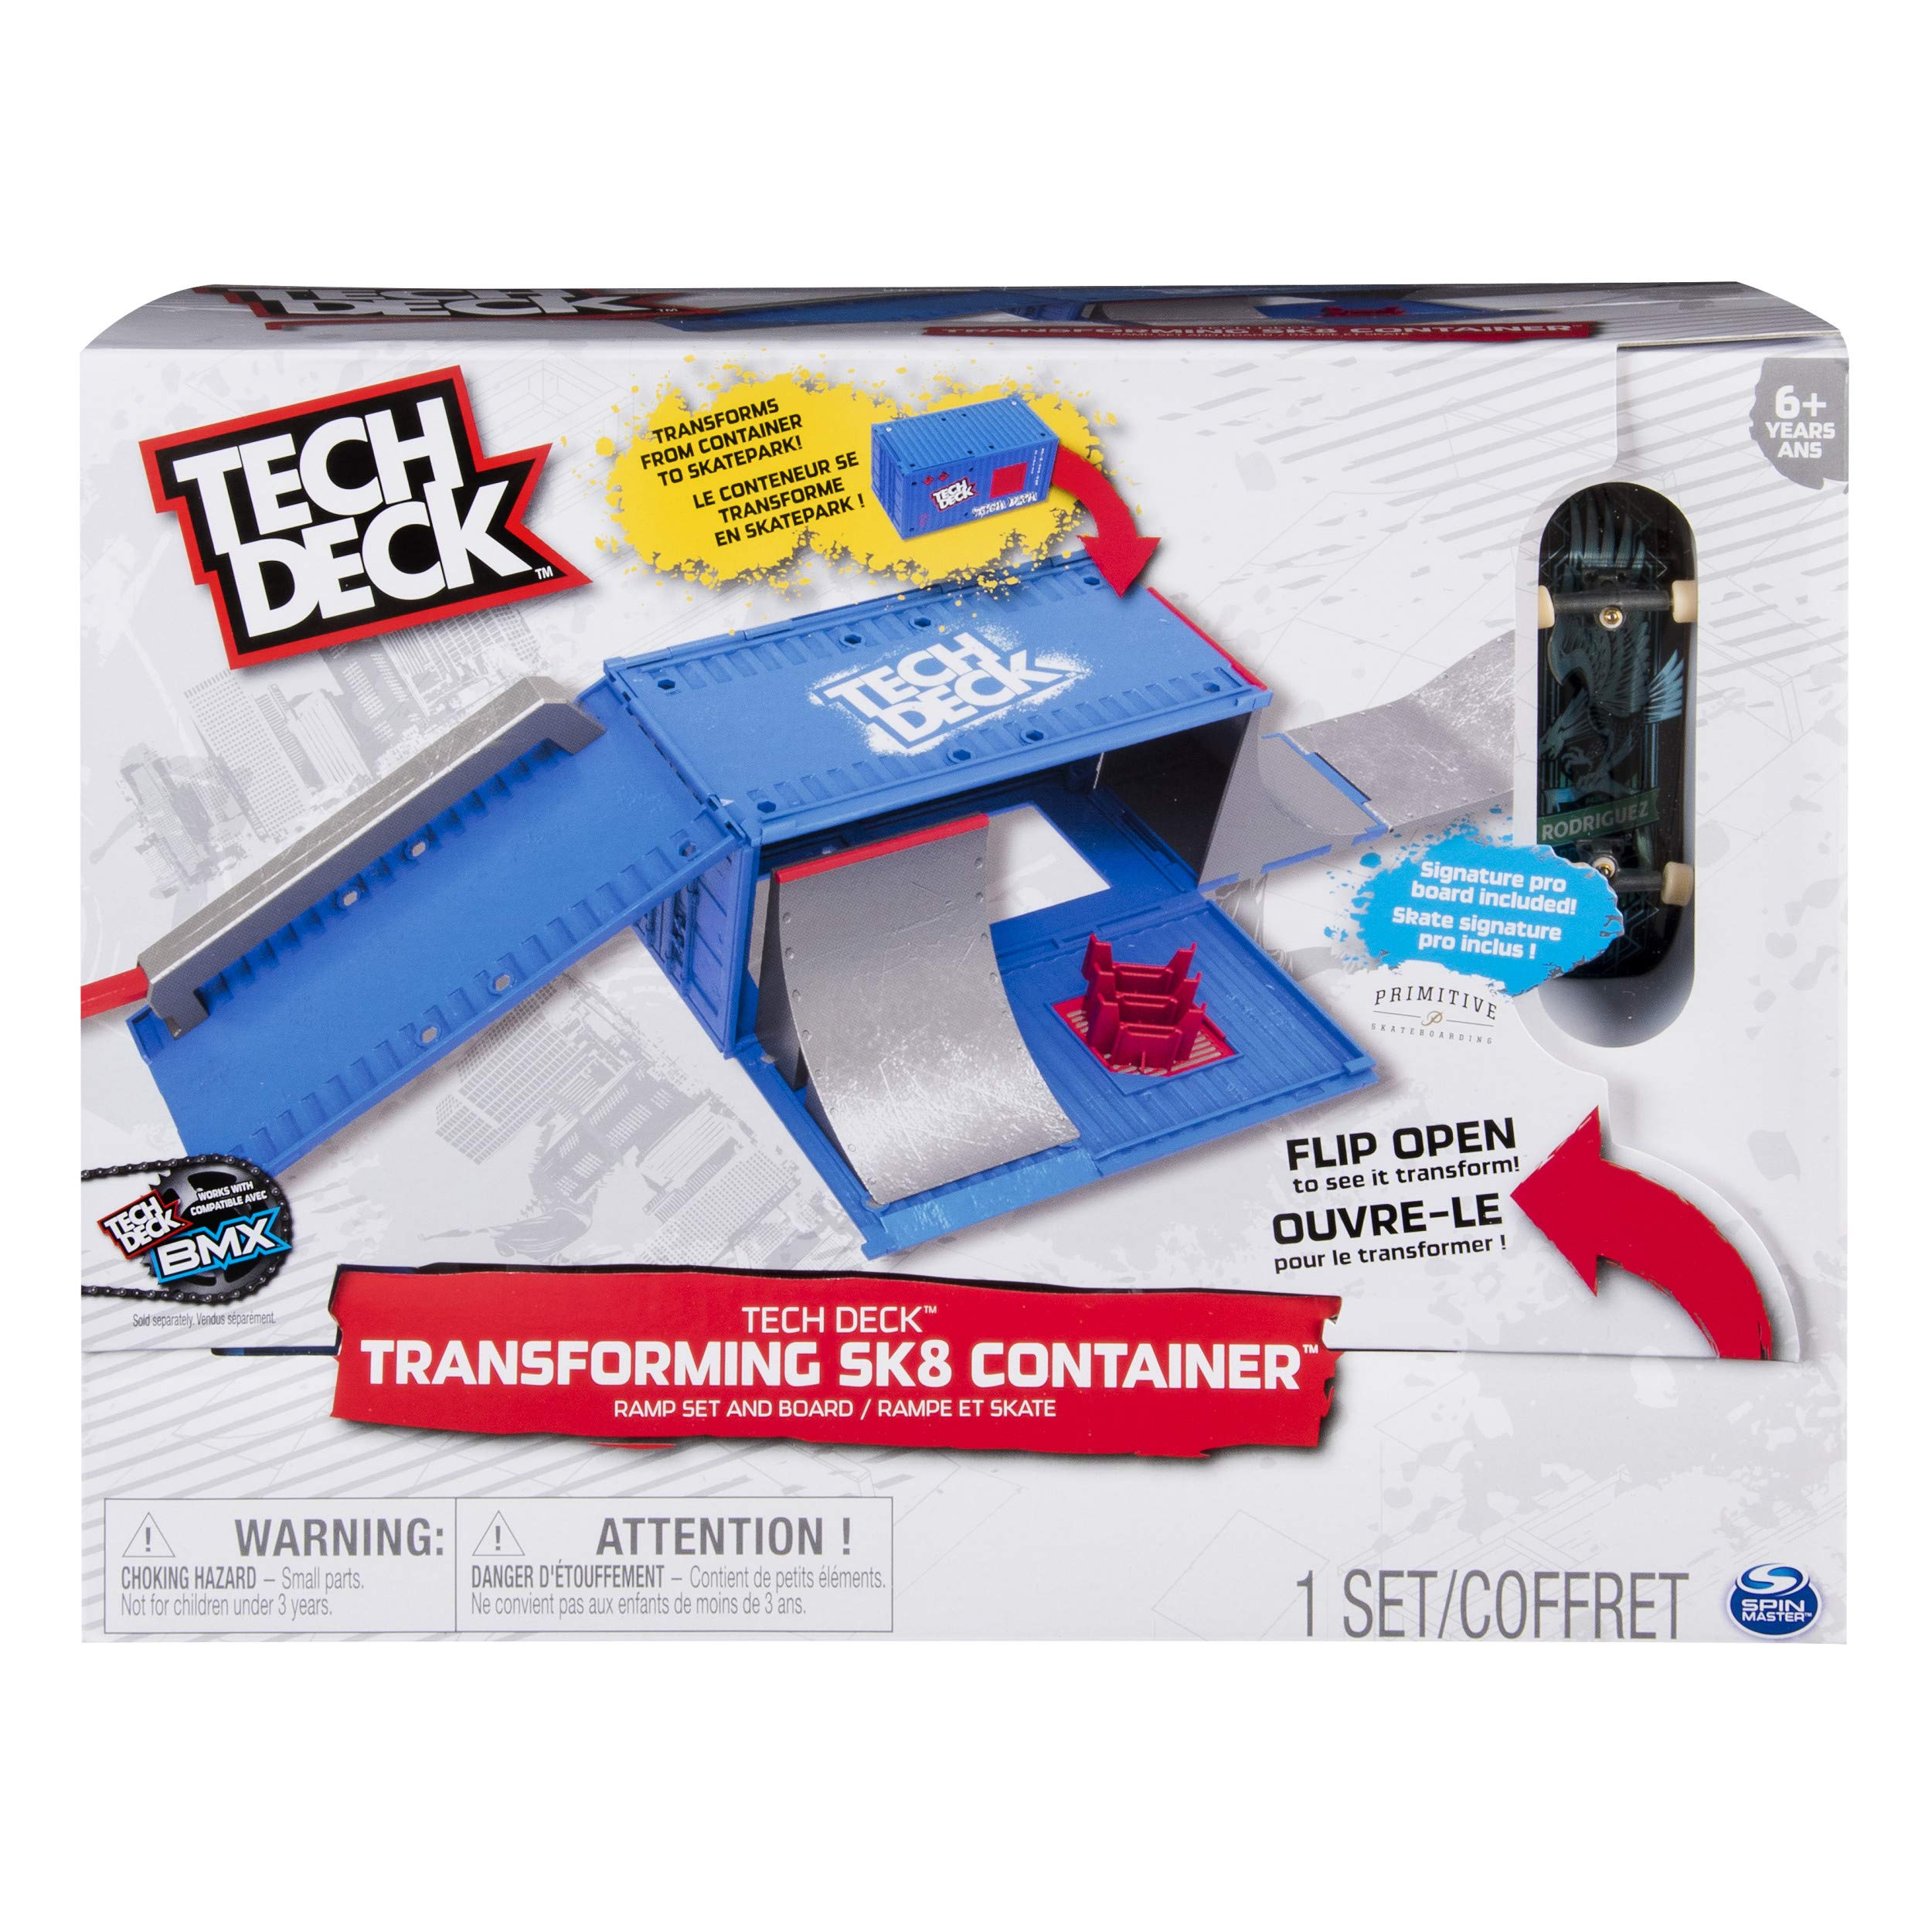 Tech Deck Transforming SK8 Container Pro Modular Skatepark and Board, for Ages 6 and Up (Edition May Vary)